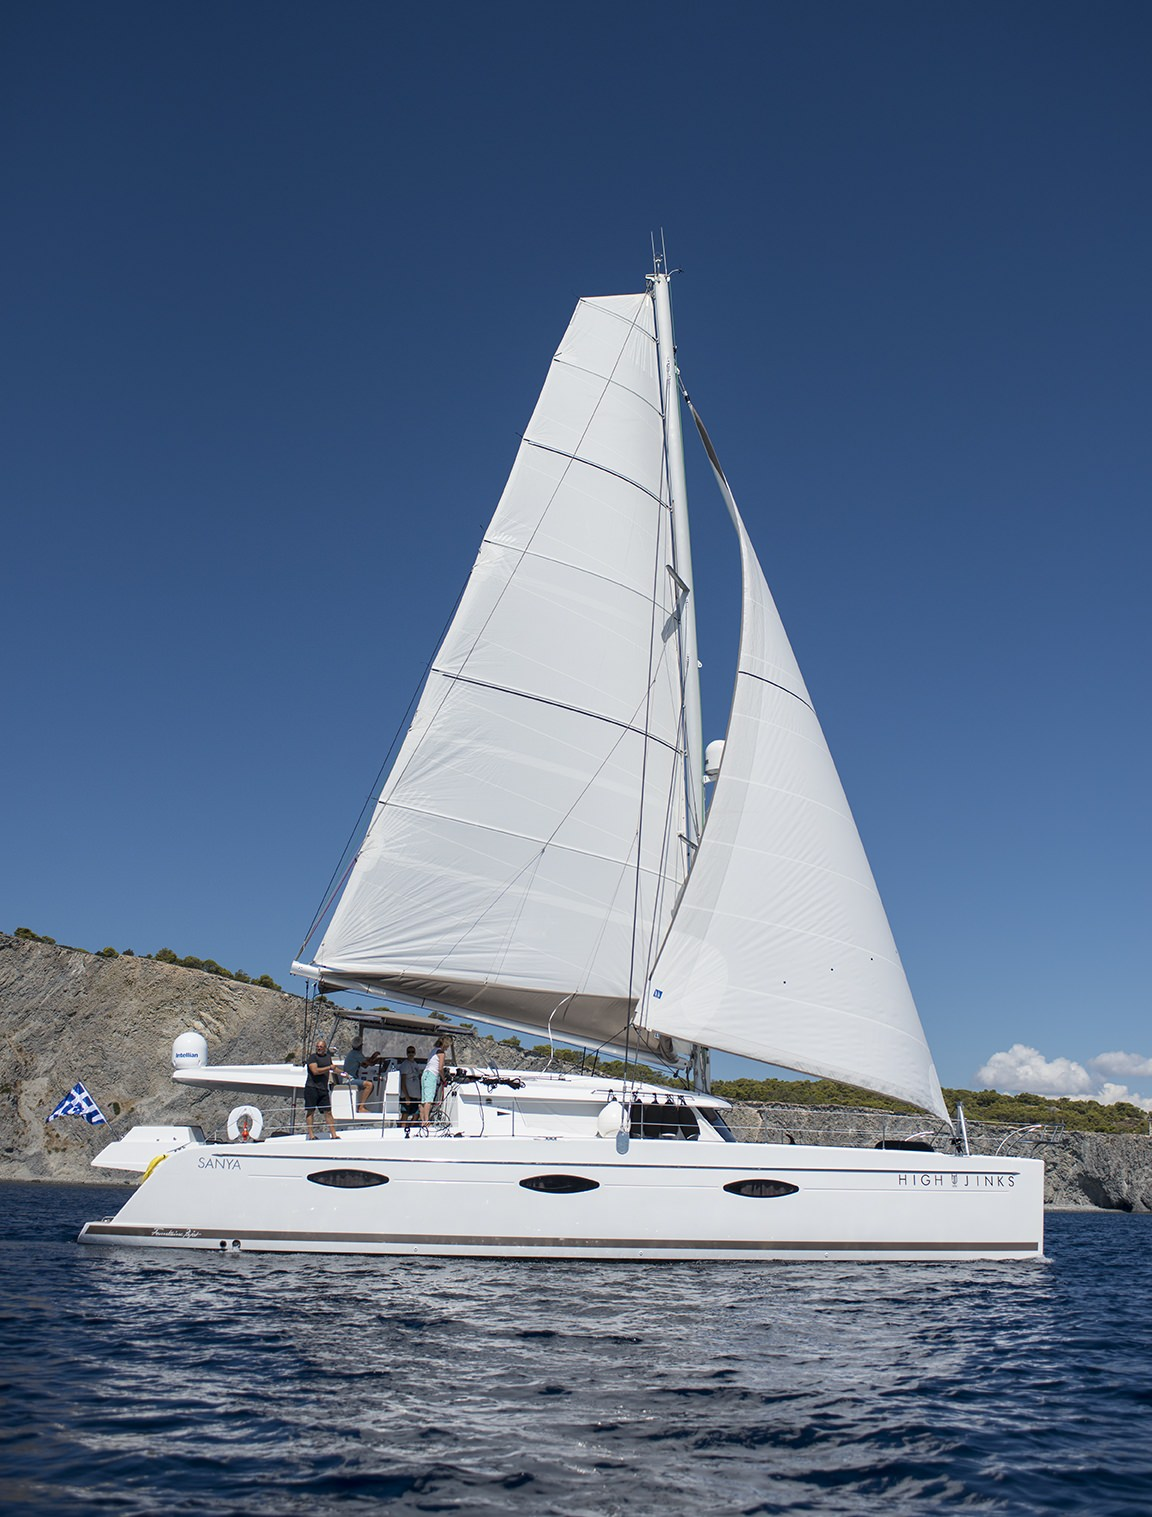 Charter with HIGHJINKS on compassyachtcharters.com